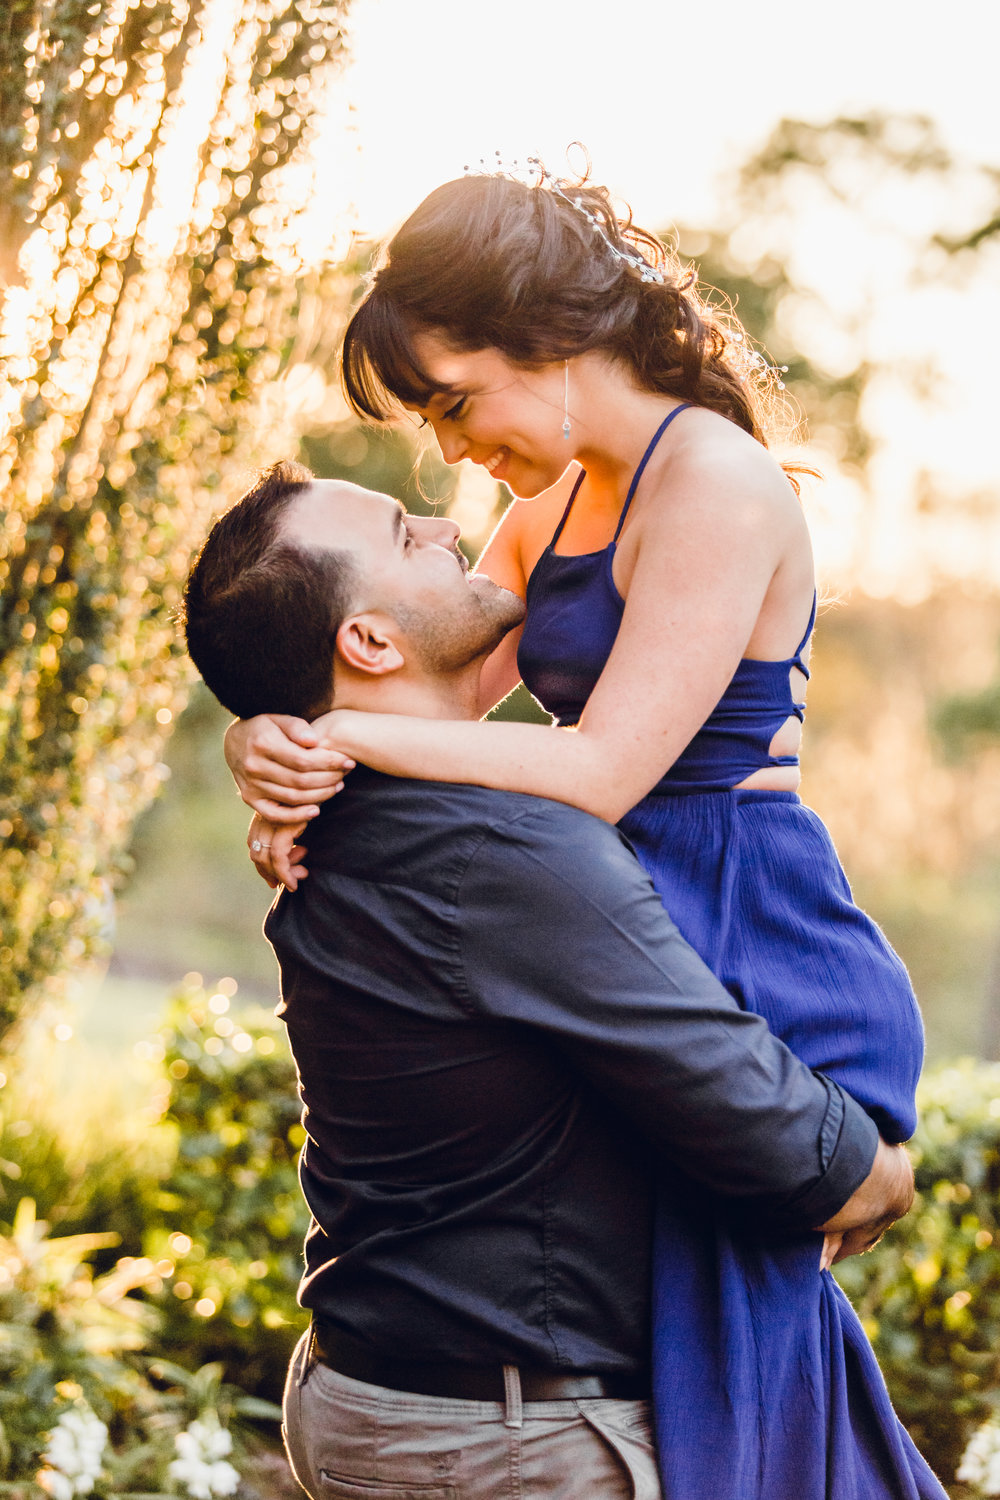 bok tower gardens romantic sunset engagement